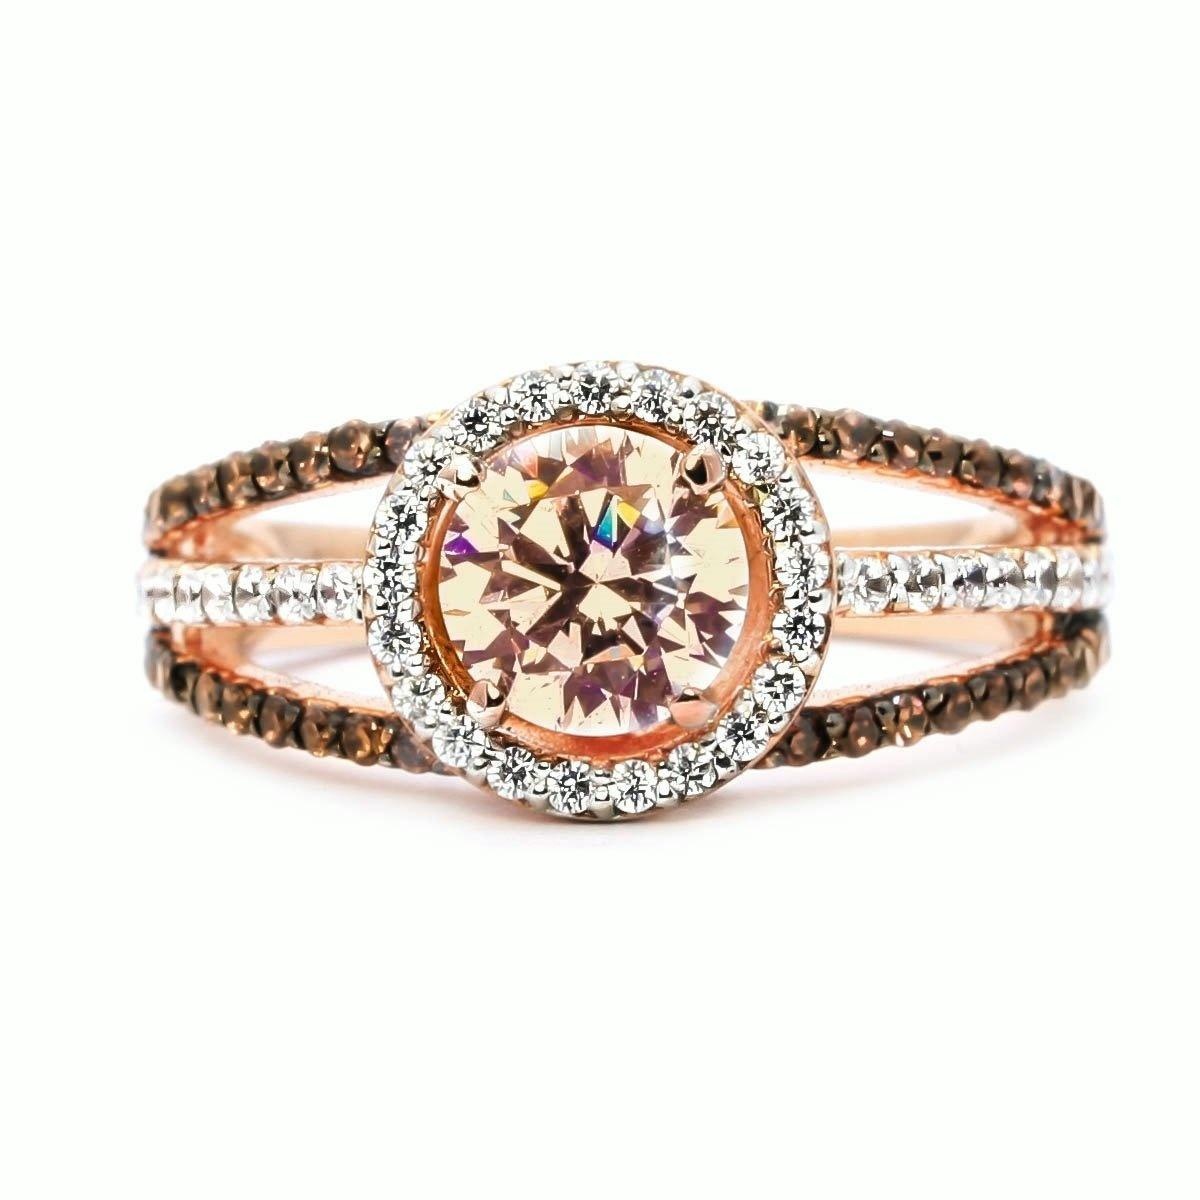 "Luxury Exquisite Women S 925 Sterling Silver Round Garnet & White Sapphire & Black Topaz Ring 18k Rose Gold Gemstone Diamond Charm Crystal B Intended For Newest Diamond Seven Stone ""x"" Anniversary Bands In Sterling Silver And Rose Gold (View 17 of 25)"